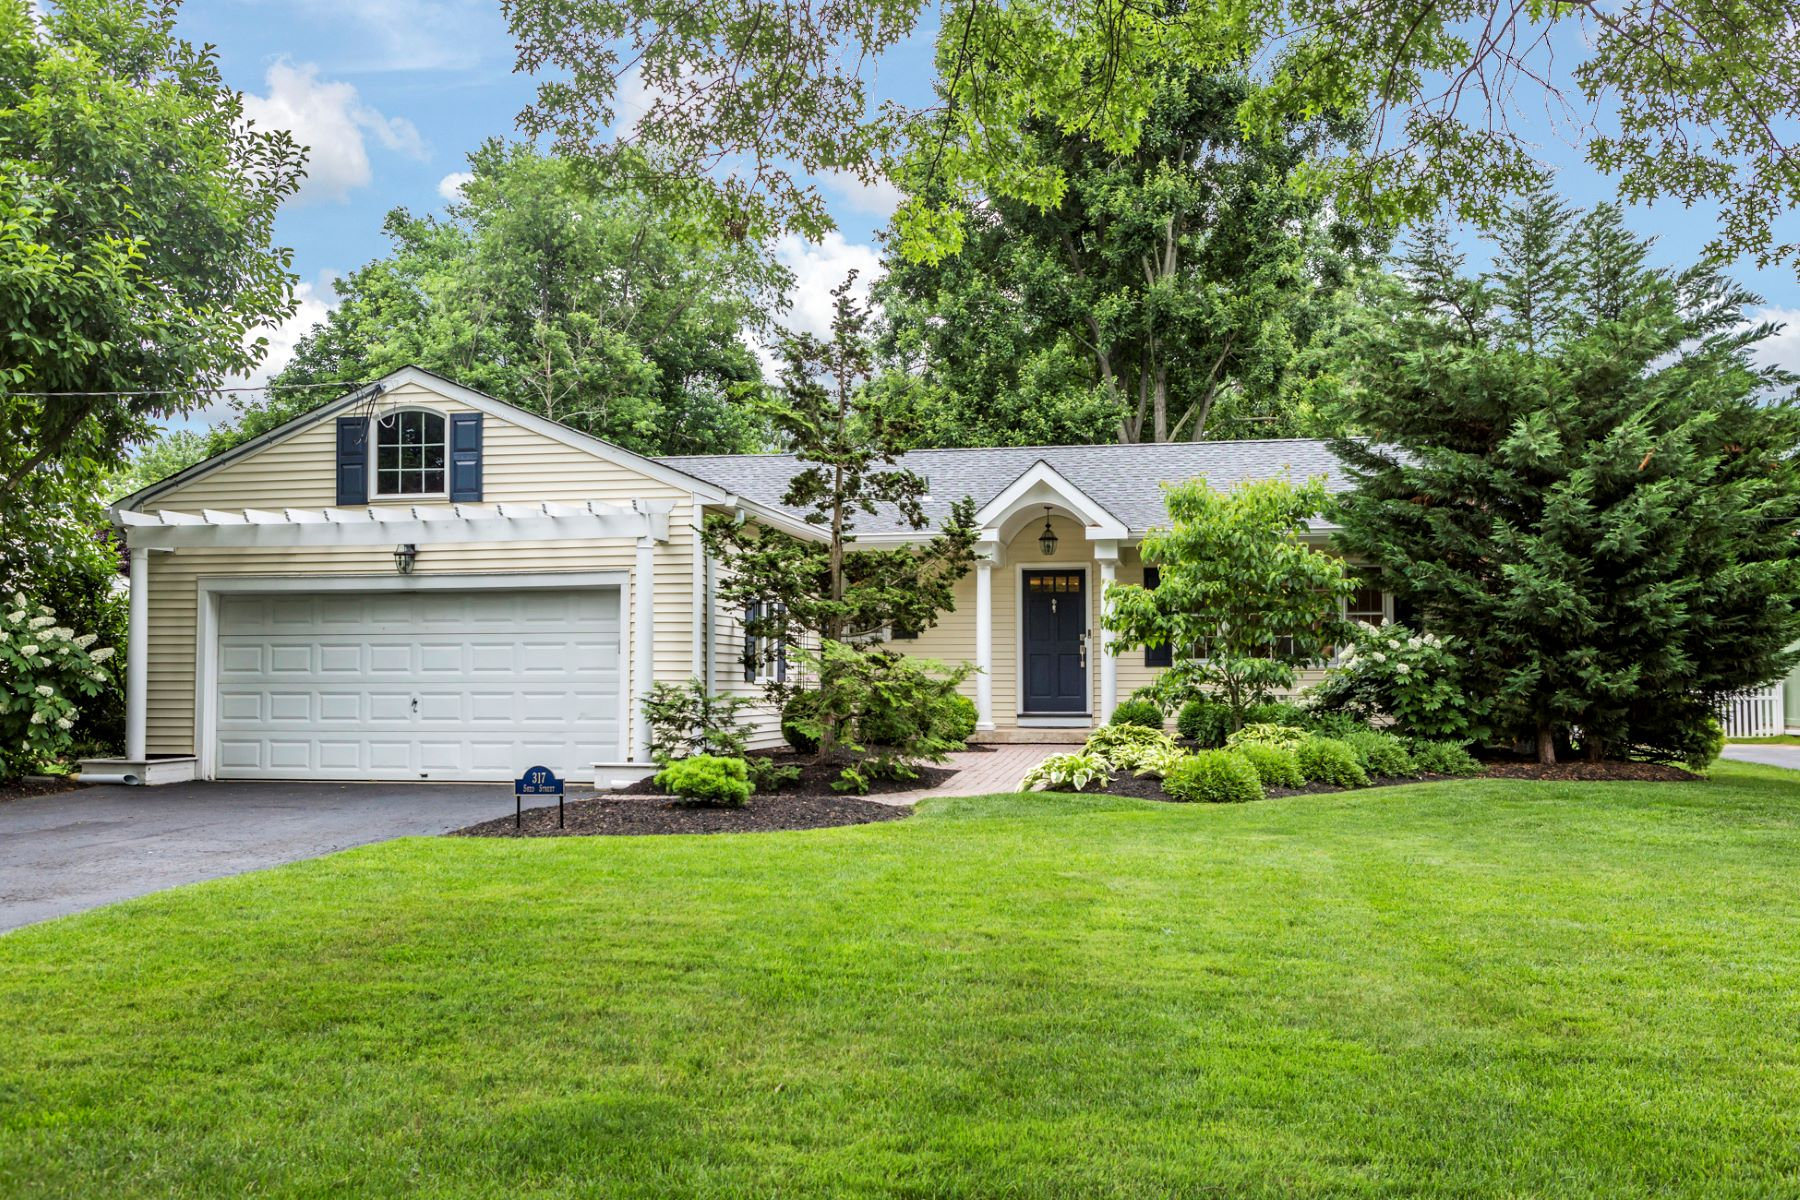 Single Family Home for Sale at Love At First Sight 317 Sked Street, Pennington, New Jersey 08534 United StatesMunicipality: Pennington Borough